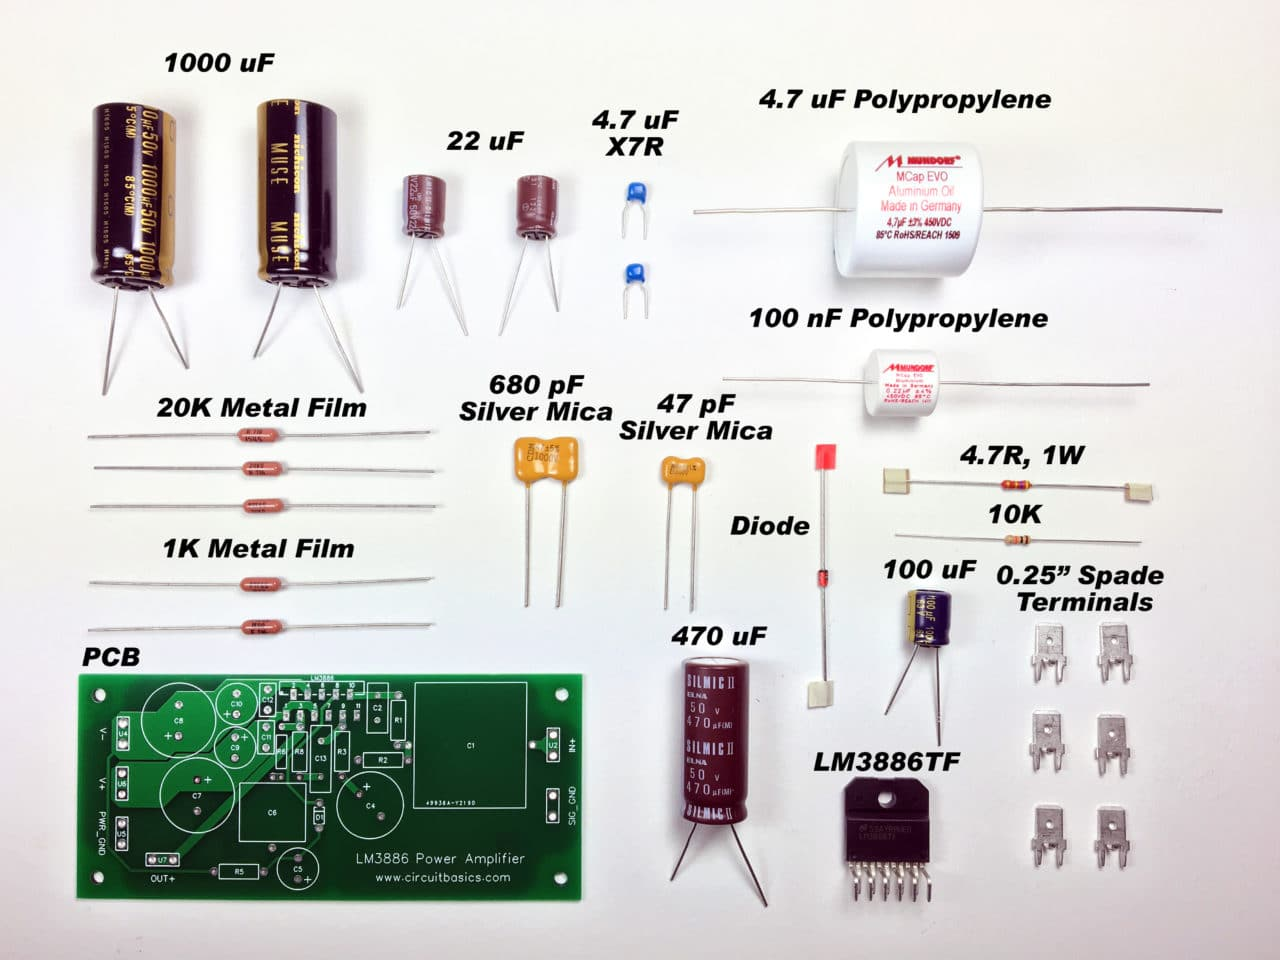 A Complete Guide To Design And Build Hi Fi Lm3886 Amplifier Signal Booster Short Wave Radio Electronics Project The Total Cost Came About 118 For Both Channels Not Including Chassis Power Supply Wiring Parts You Can It Lot Less With Cheaper